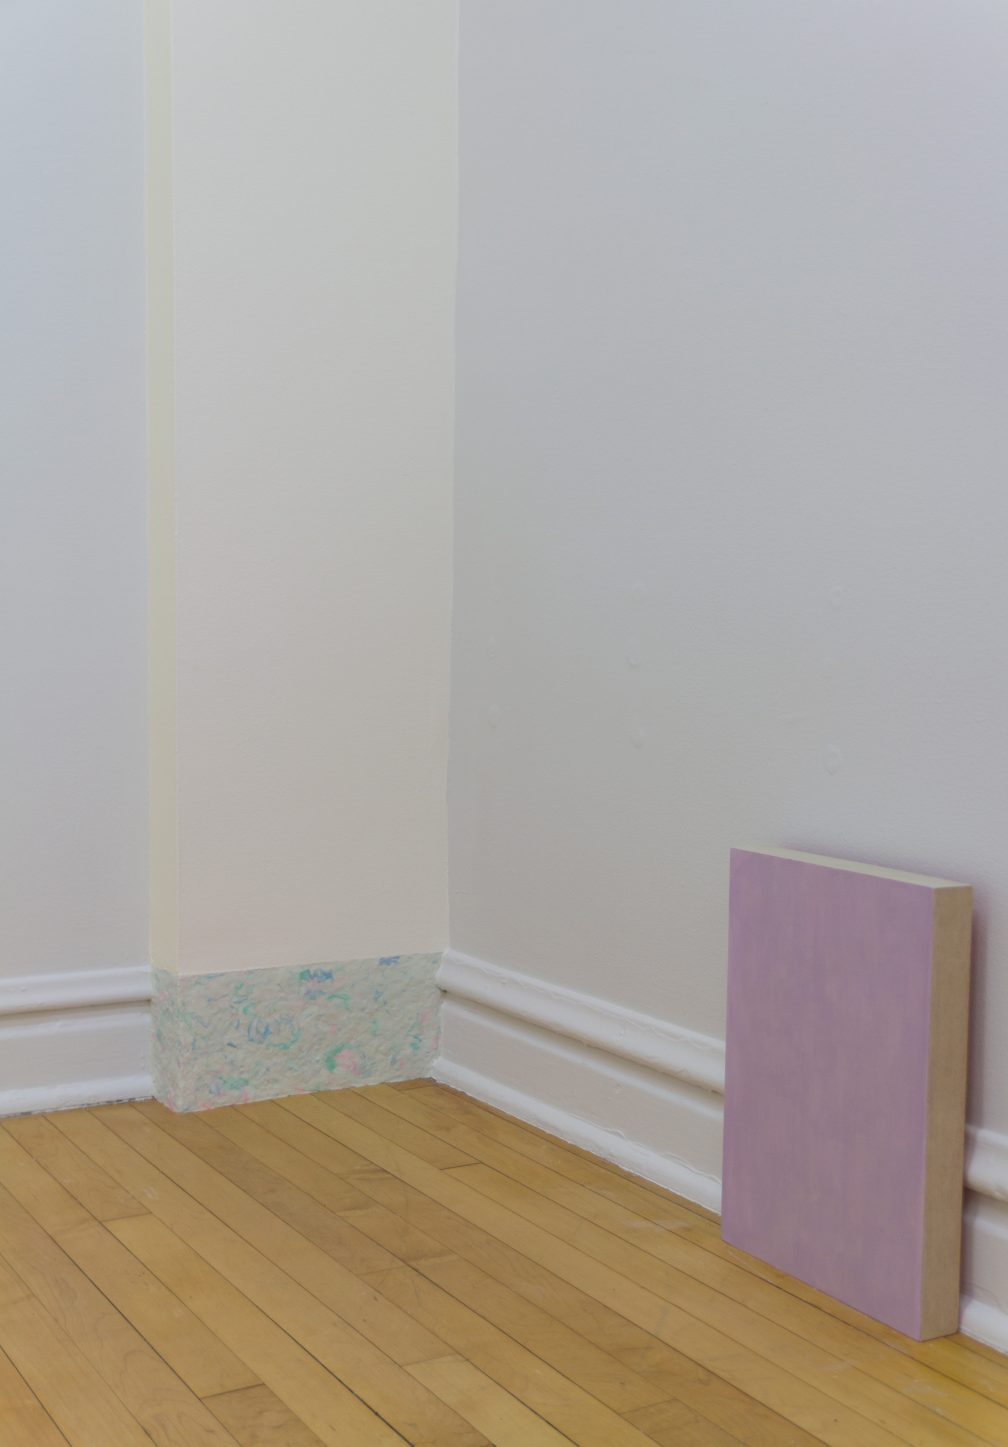 Installation view,MiddleDouble, 2014